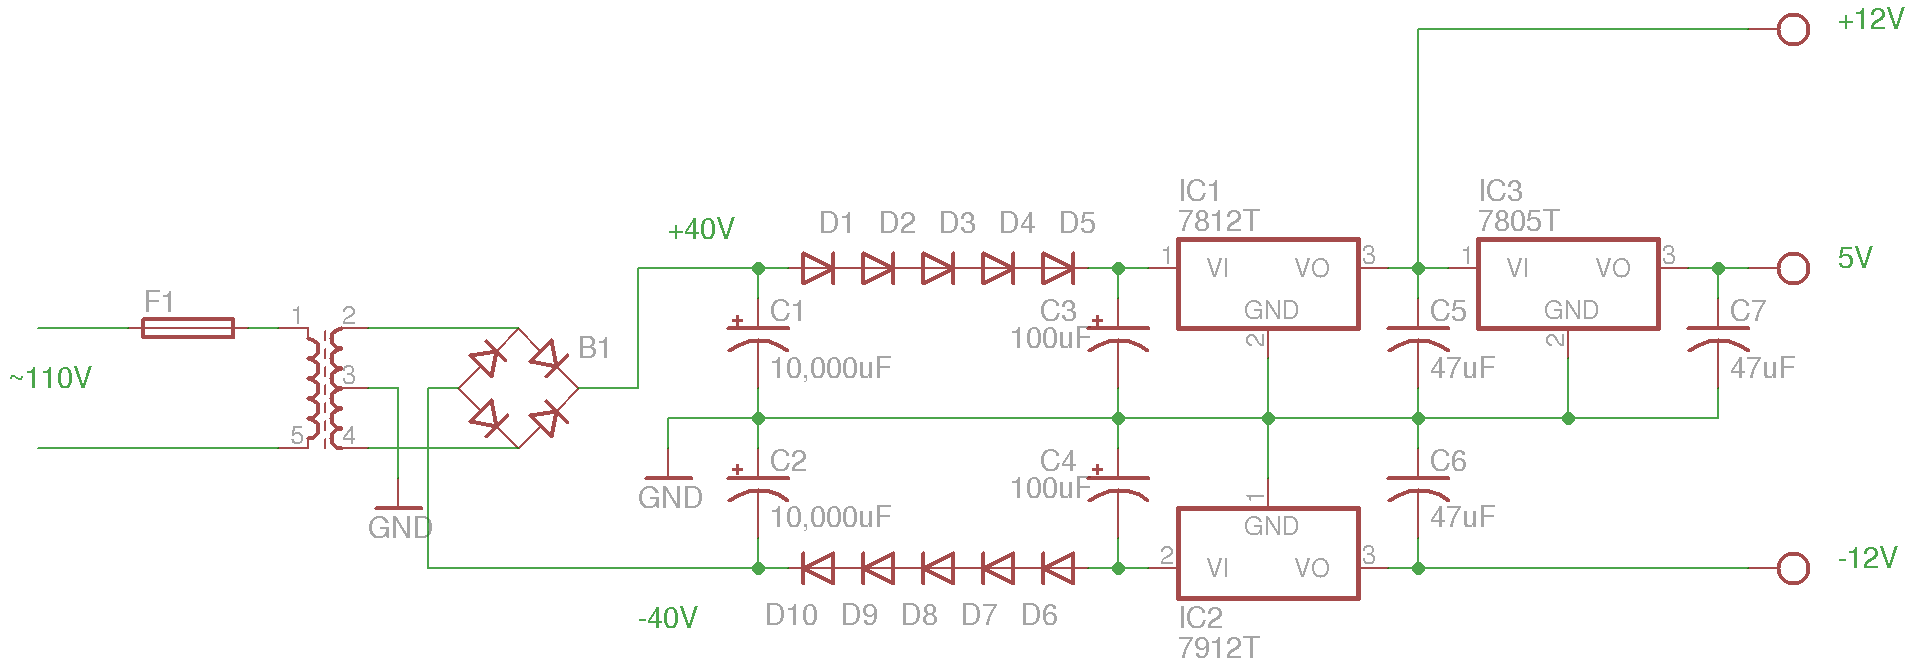 Kerry D Wong Blog Archive A Digitally Controlled Dual Tracking 12 Volt Symmetric Power Supply Circuit Here Are Couple Of Pictures The Mcu Dac Board Microcontroller I Used Is An Atmega328p And Pin Designations Shown Below Compatible To